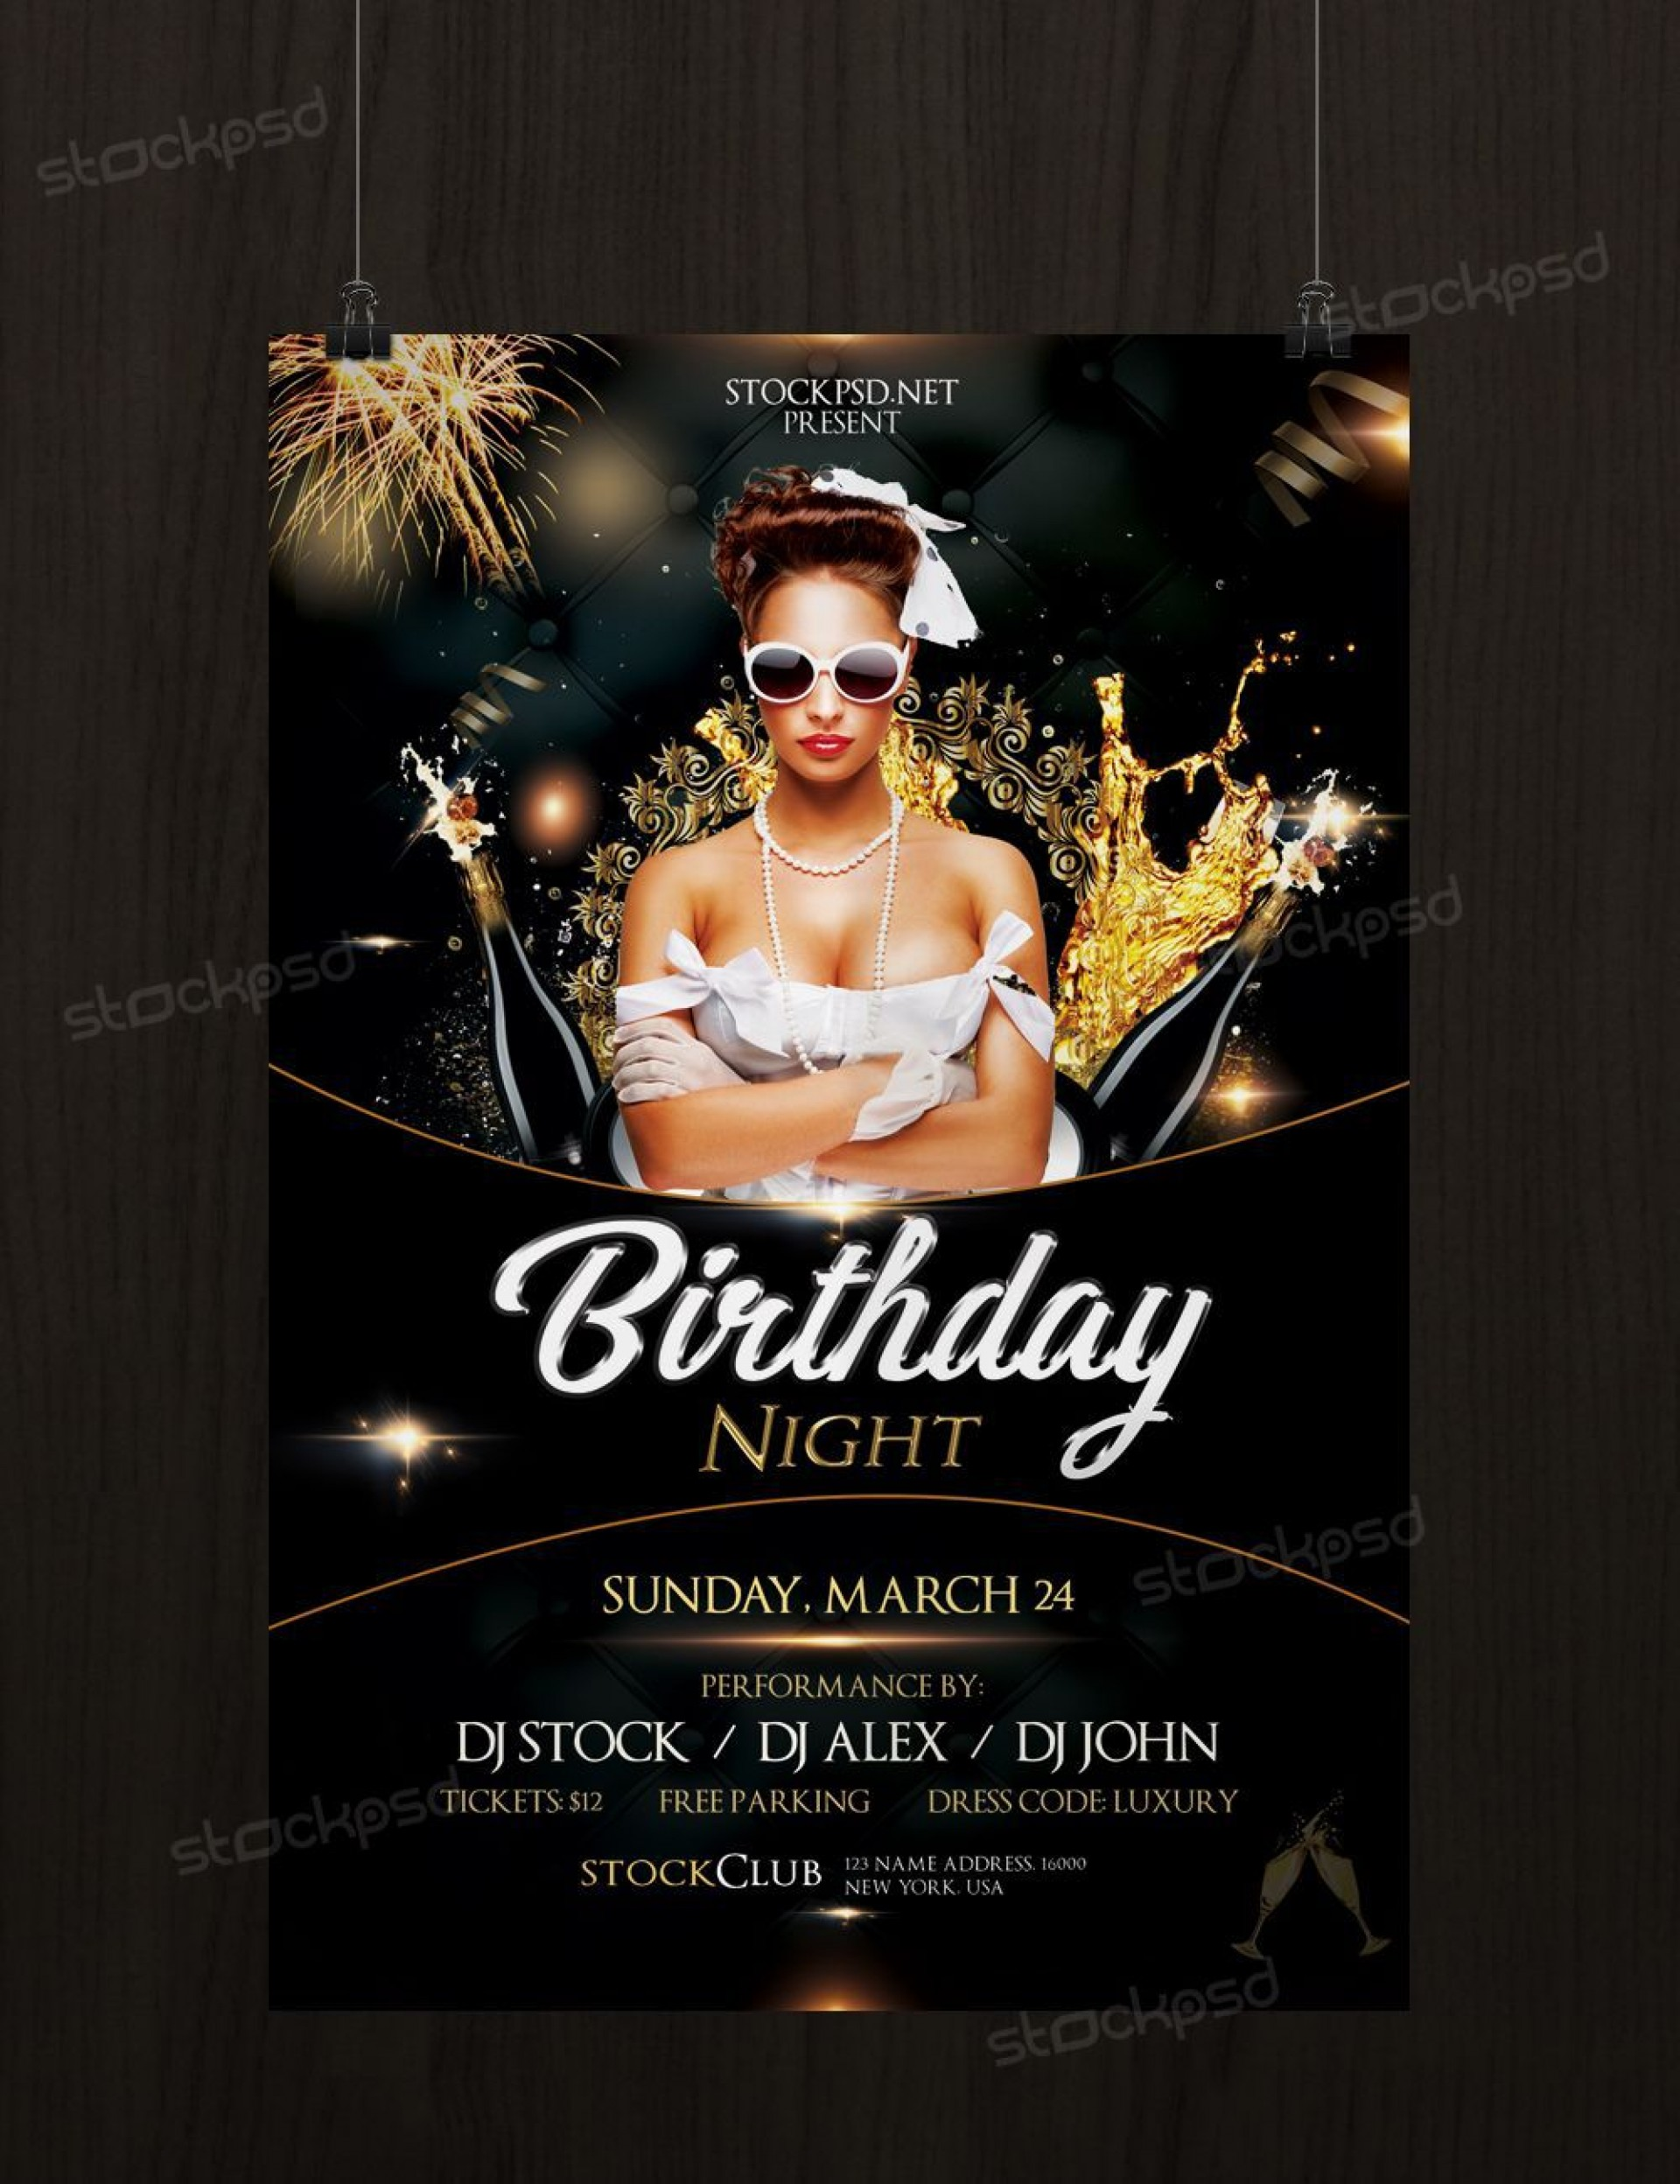 003 Dreaded Birthday Flyer Template Psd Free Download Highest Clarity 1920